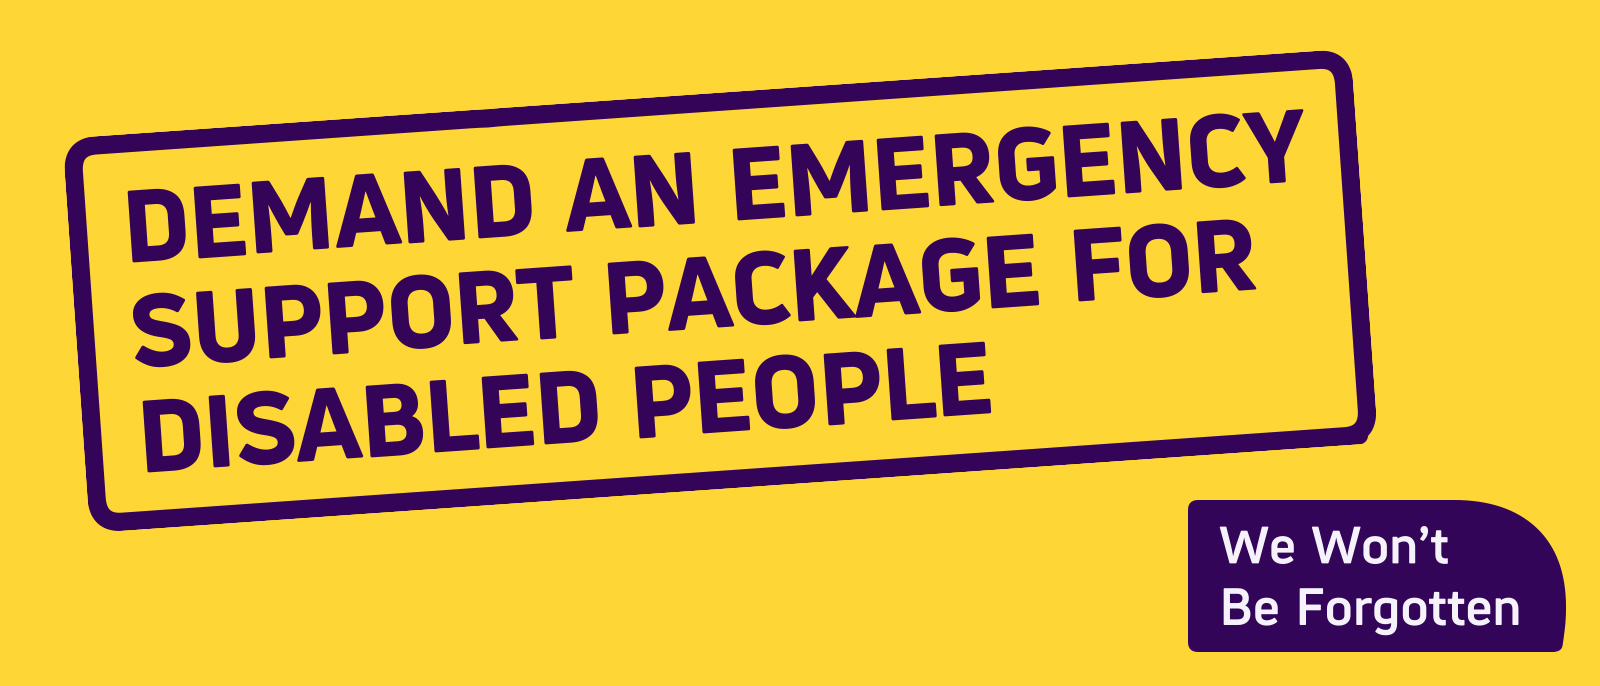 Demand an emergency support package for disabled people